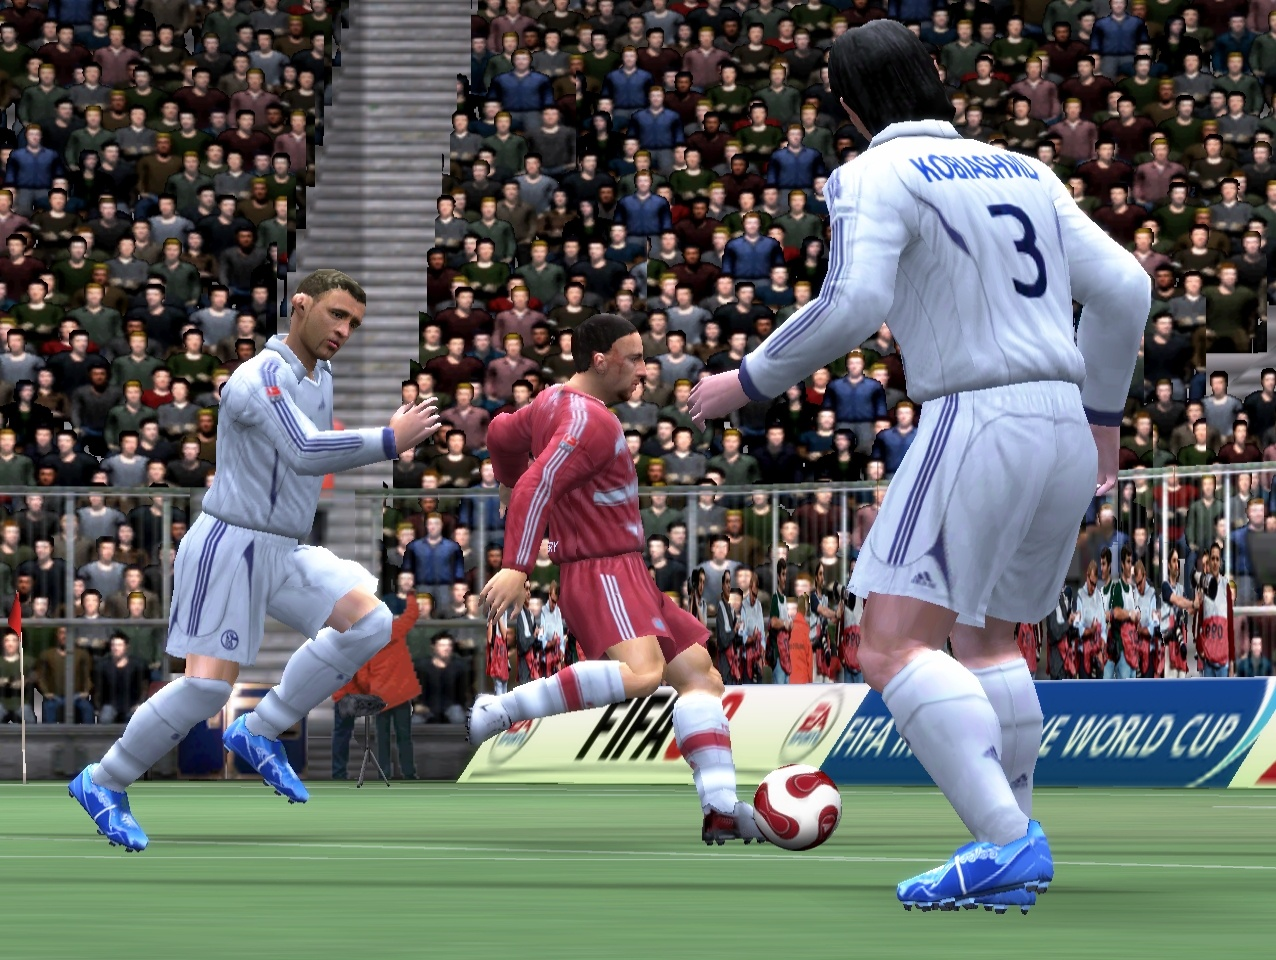 One change to the control system is that you can now flick between defenders with the right analogue stick.